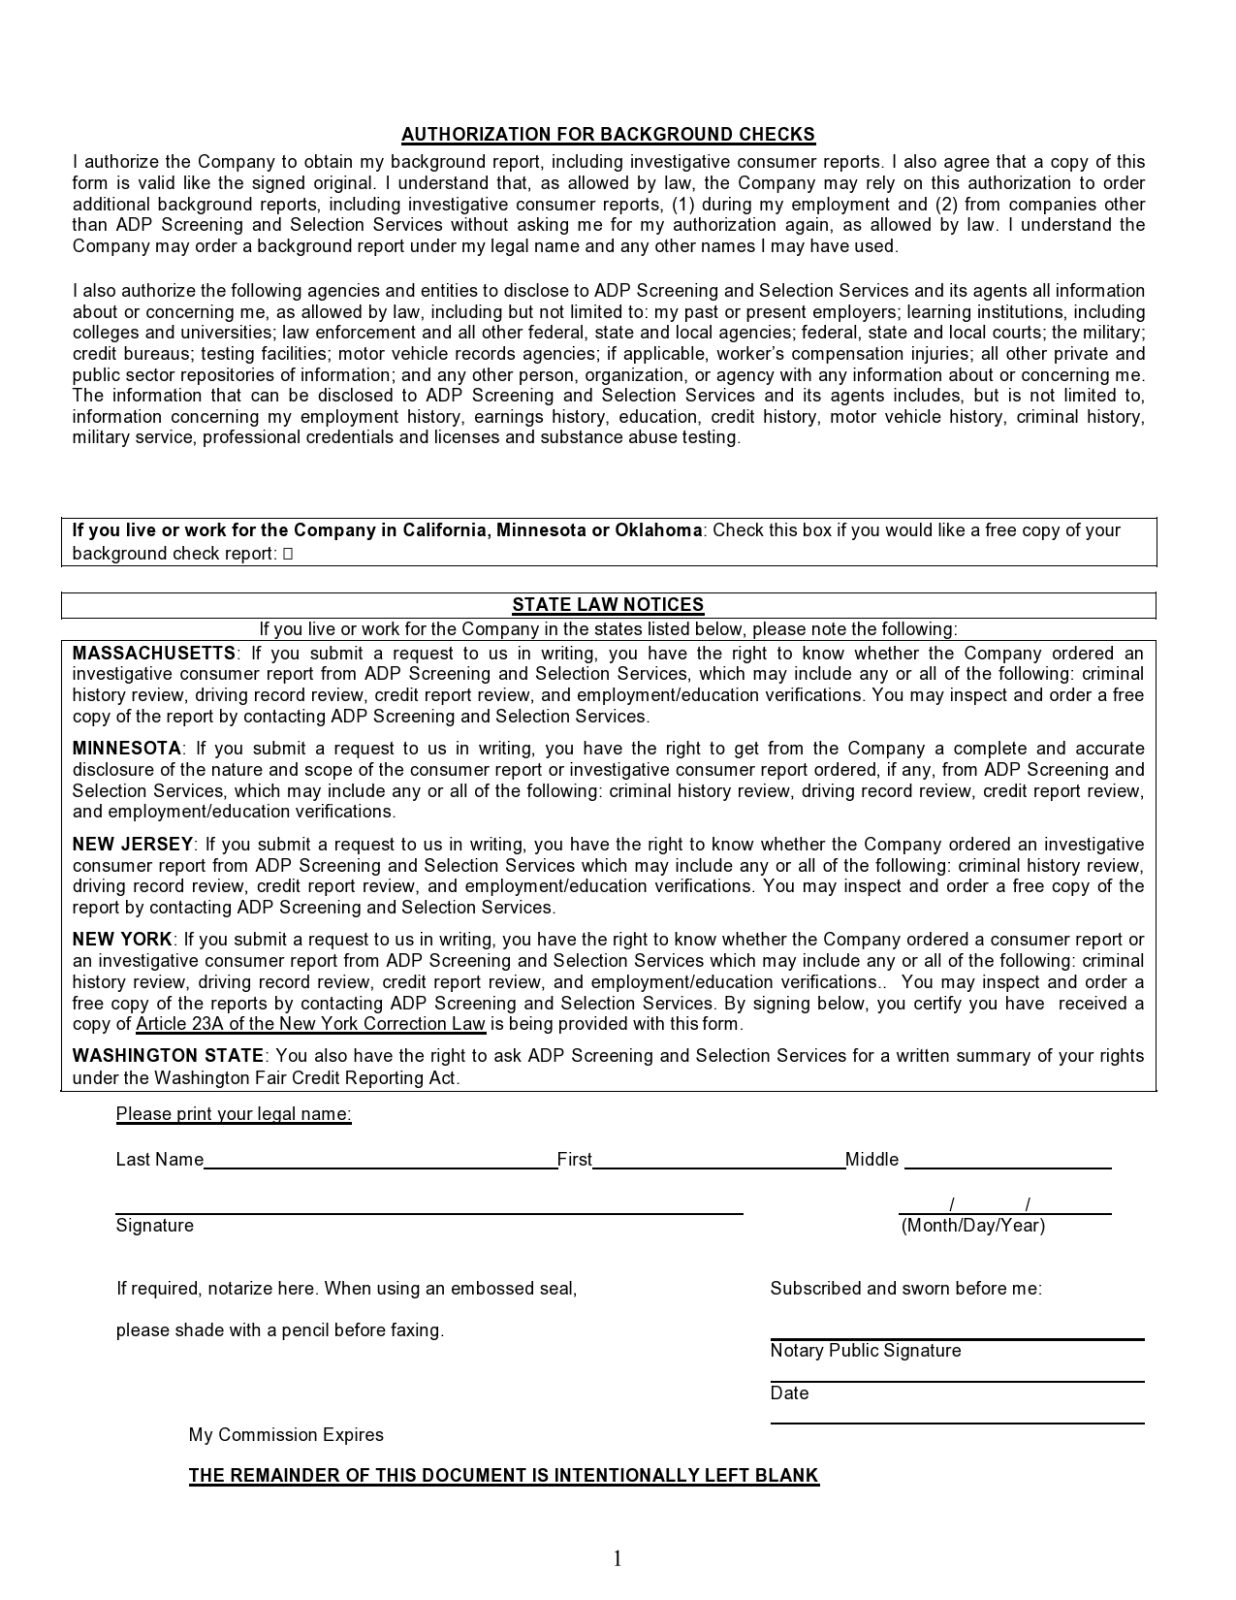 Free background check form 11